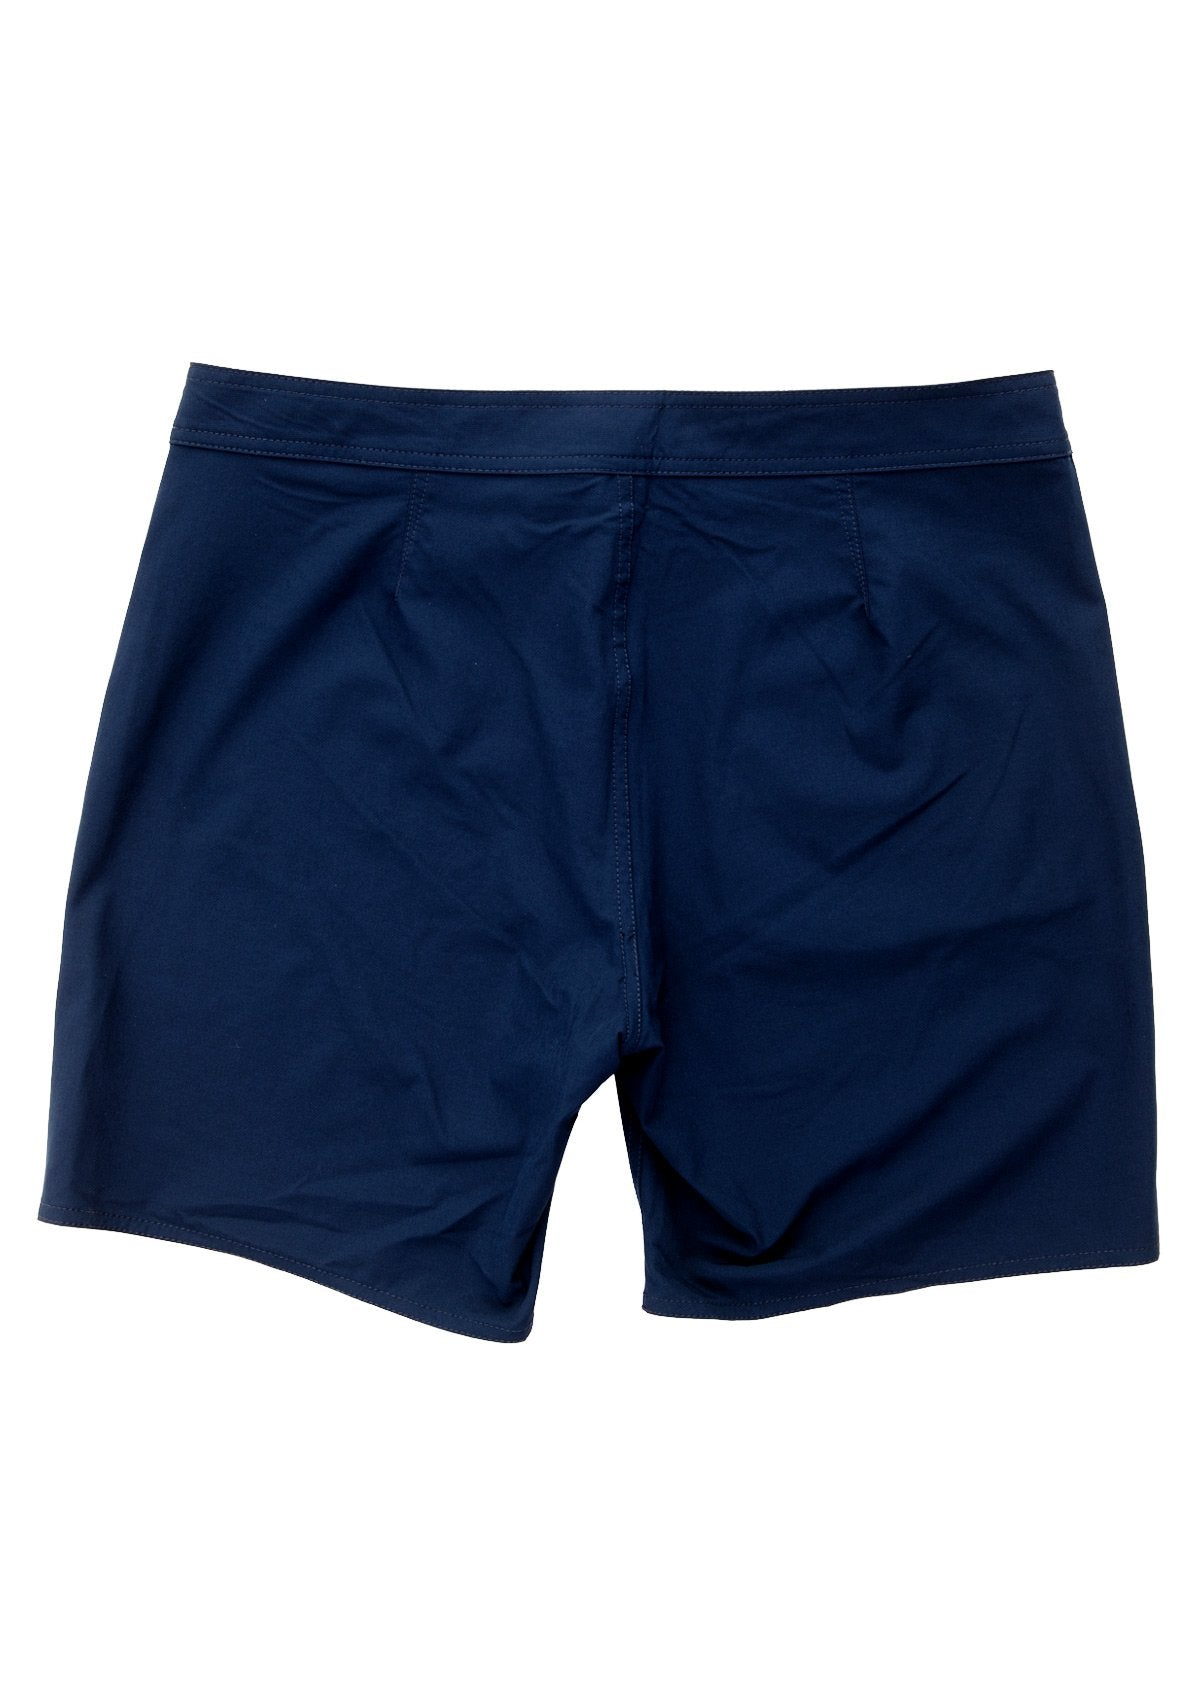 needessentials side mens surfing boardshorts non branded navy swimming